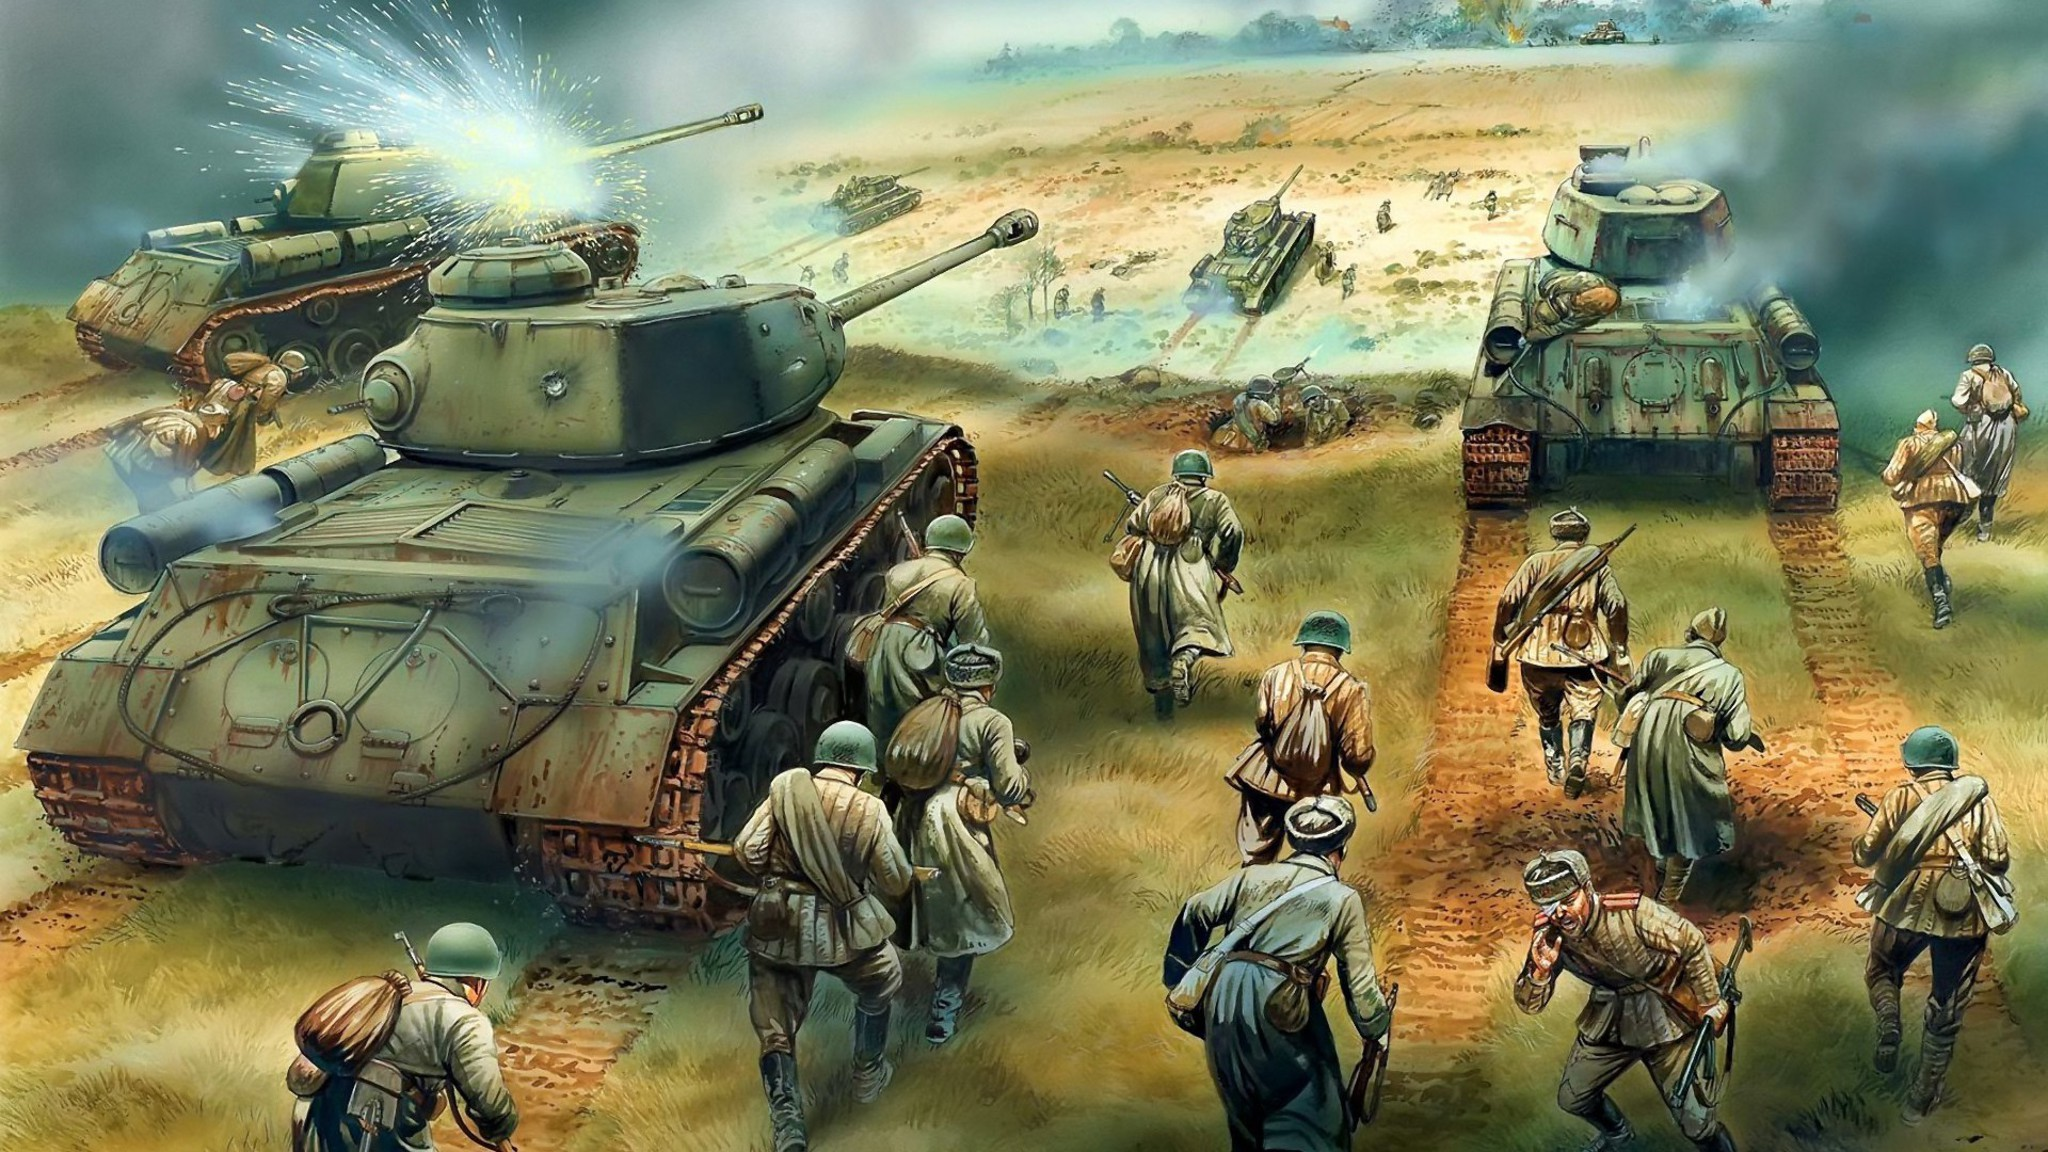 Vehicles War Vehicles Action Hd Military Images Fire: Soldiers War Battlefield Tanks Wallpaper